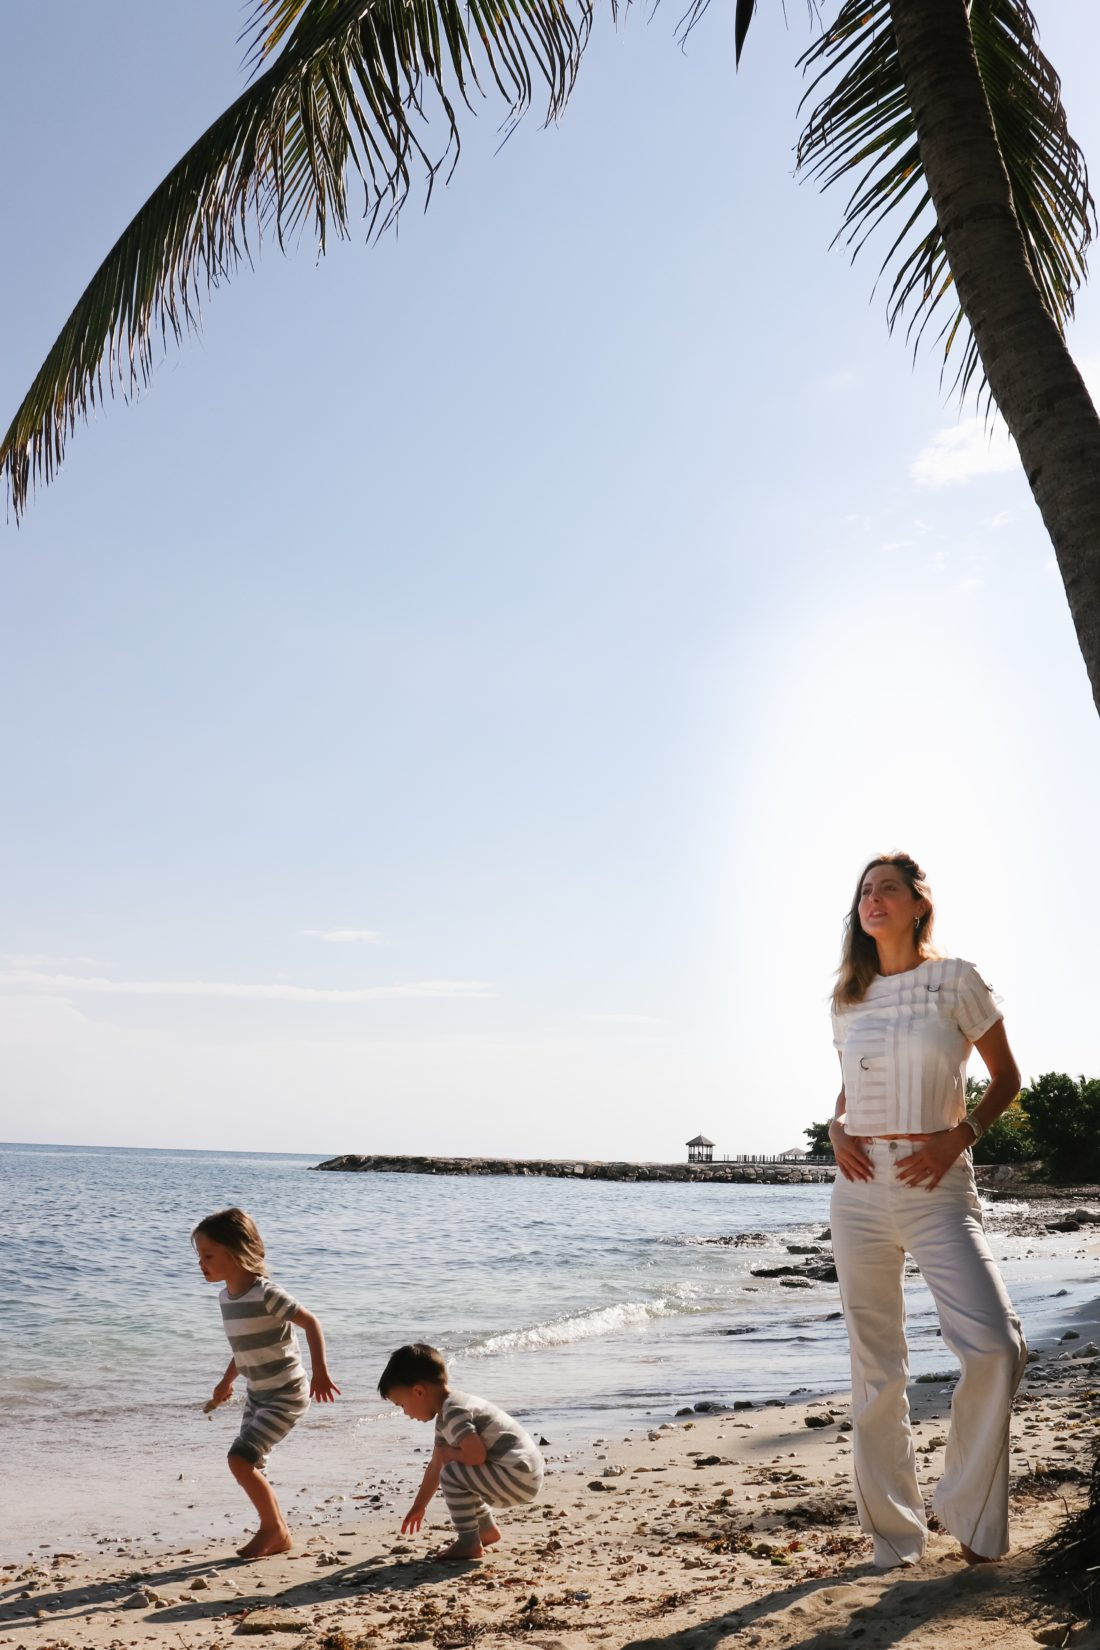 Eva Amurri Martino stands on the beach in Jamaica with her kids Marlowe and Major